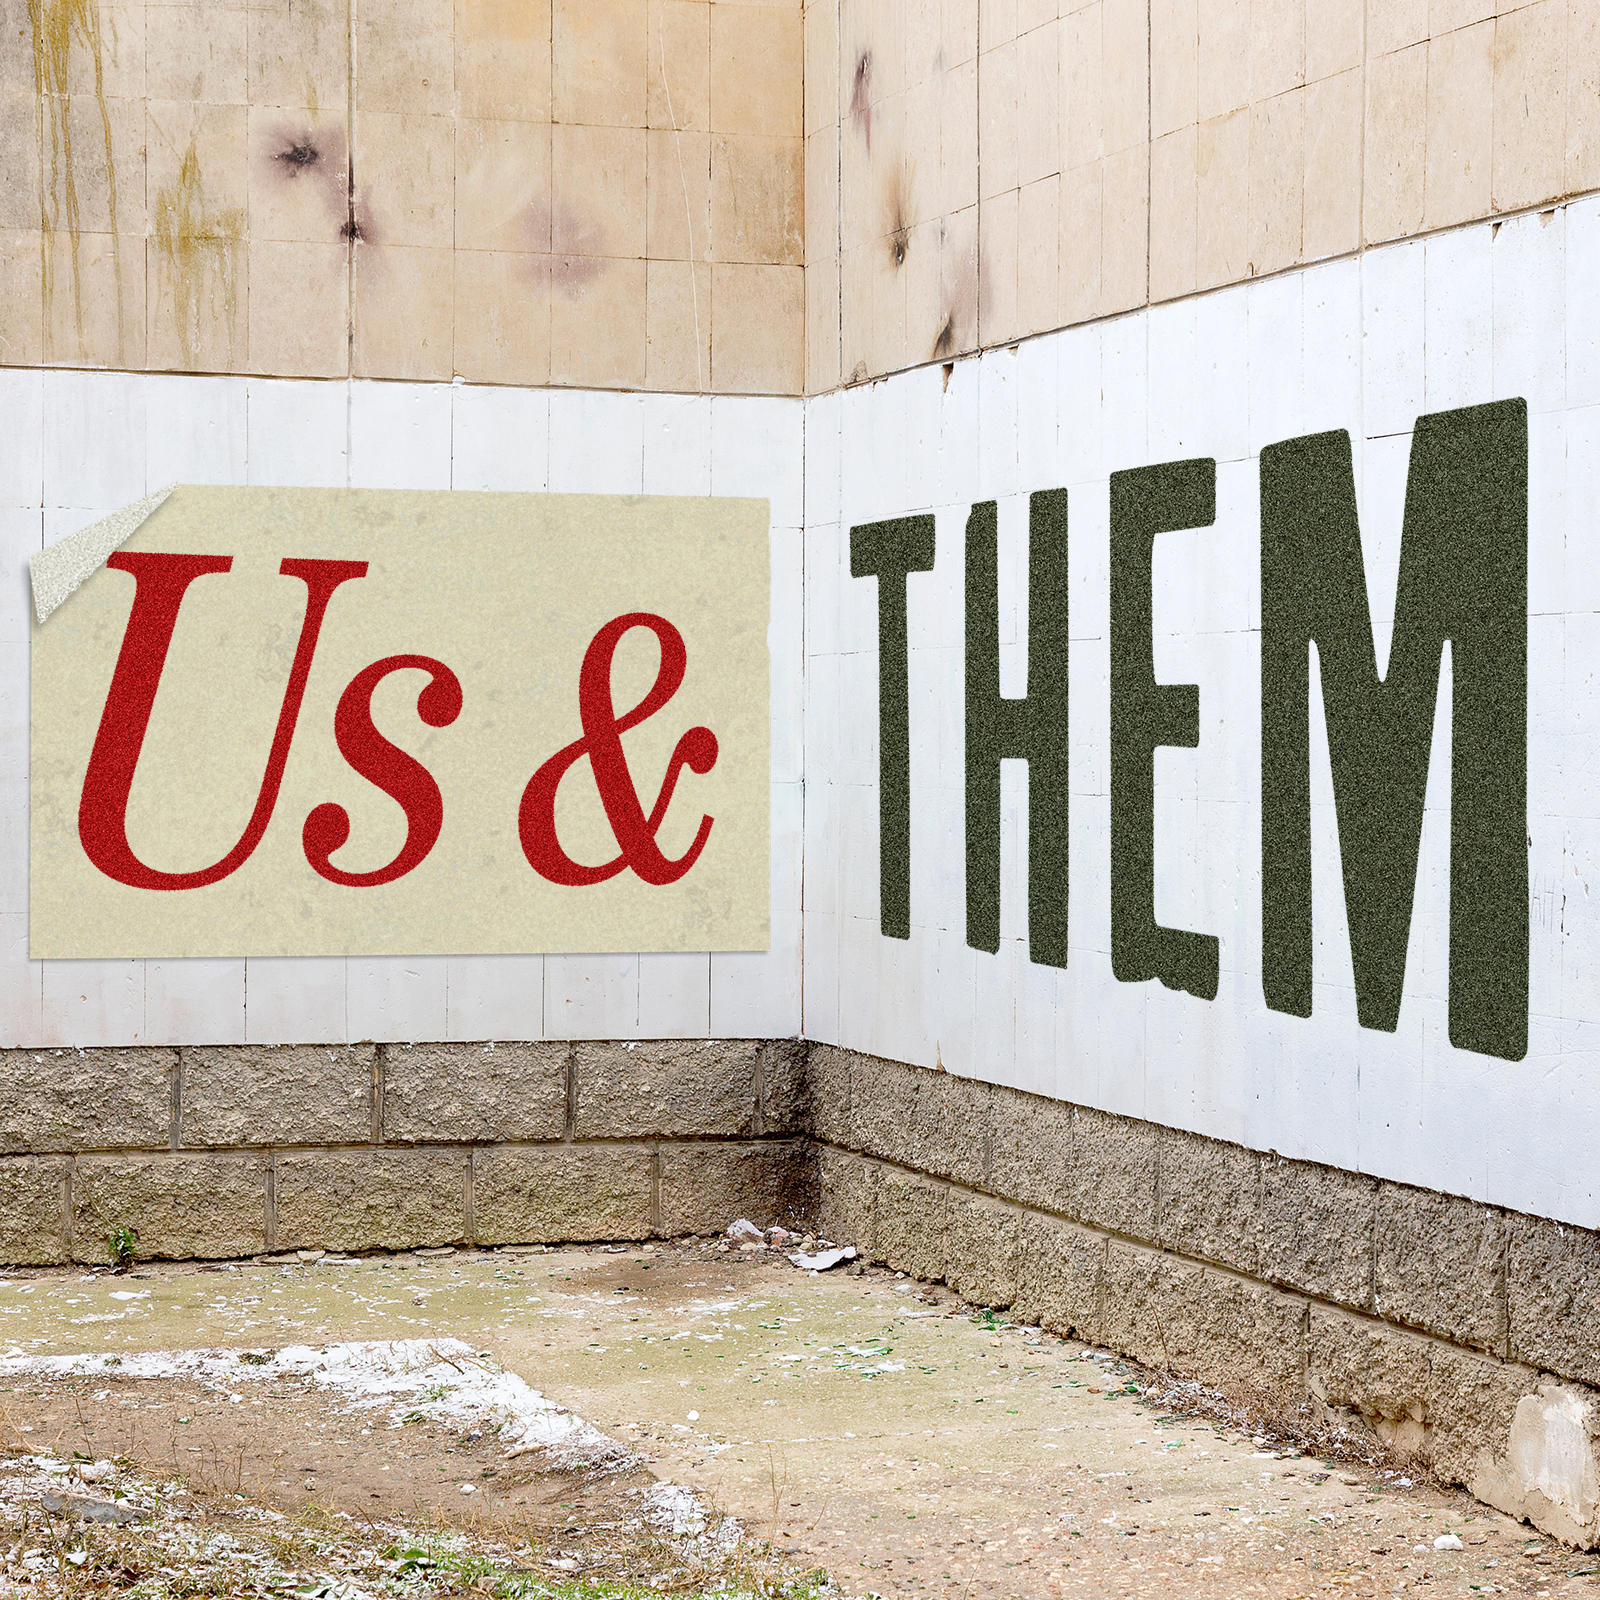 Us & Them tells stories from the fault lines that separate Americans. Peabody Award-winning public radio producer Trey Kay listens to people on both sides of the divide.